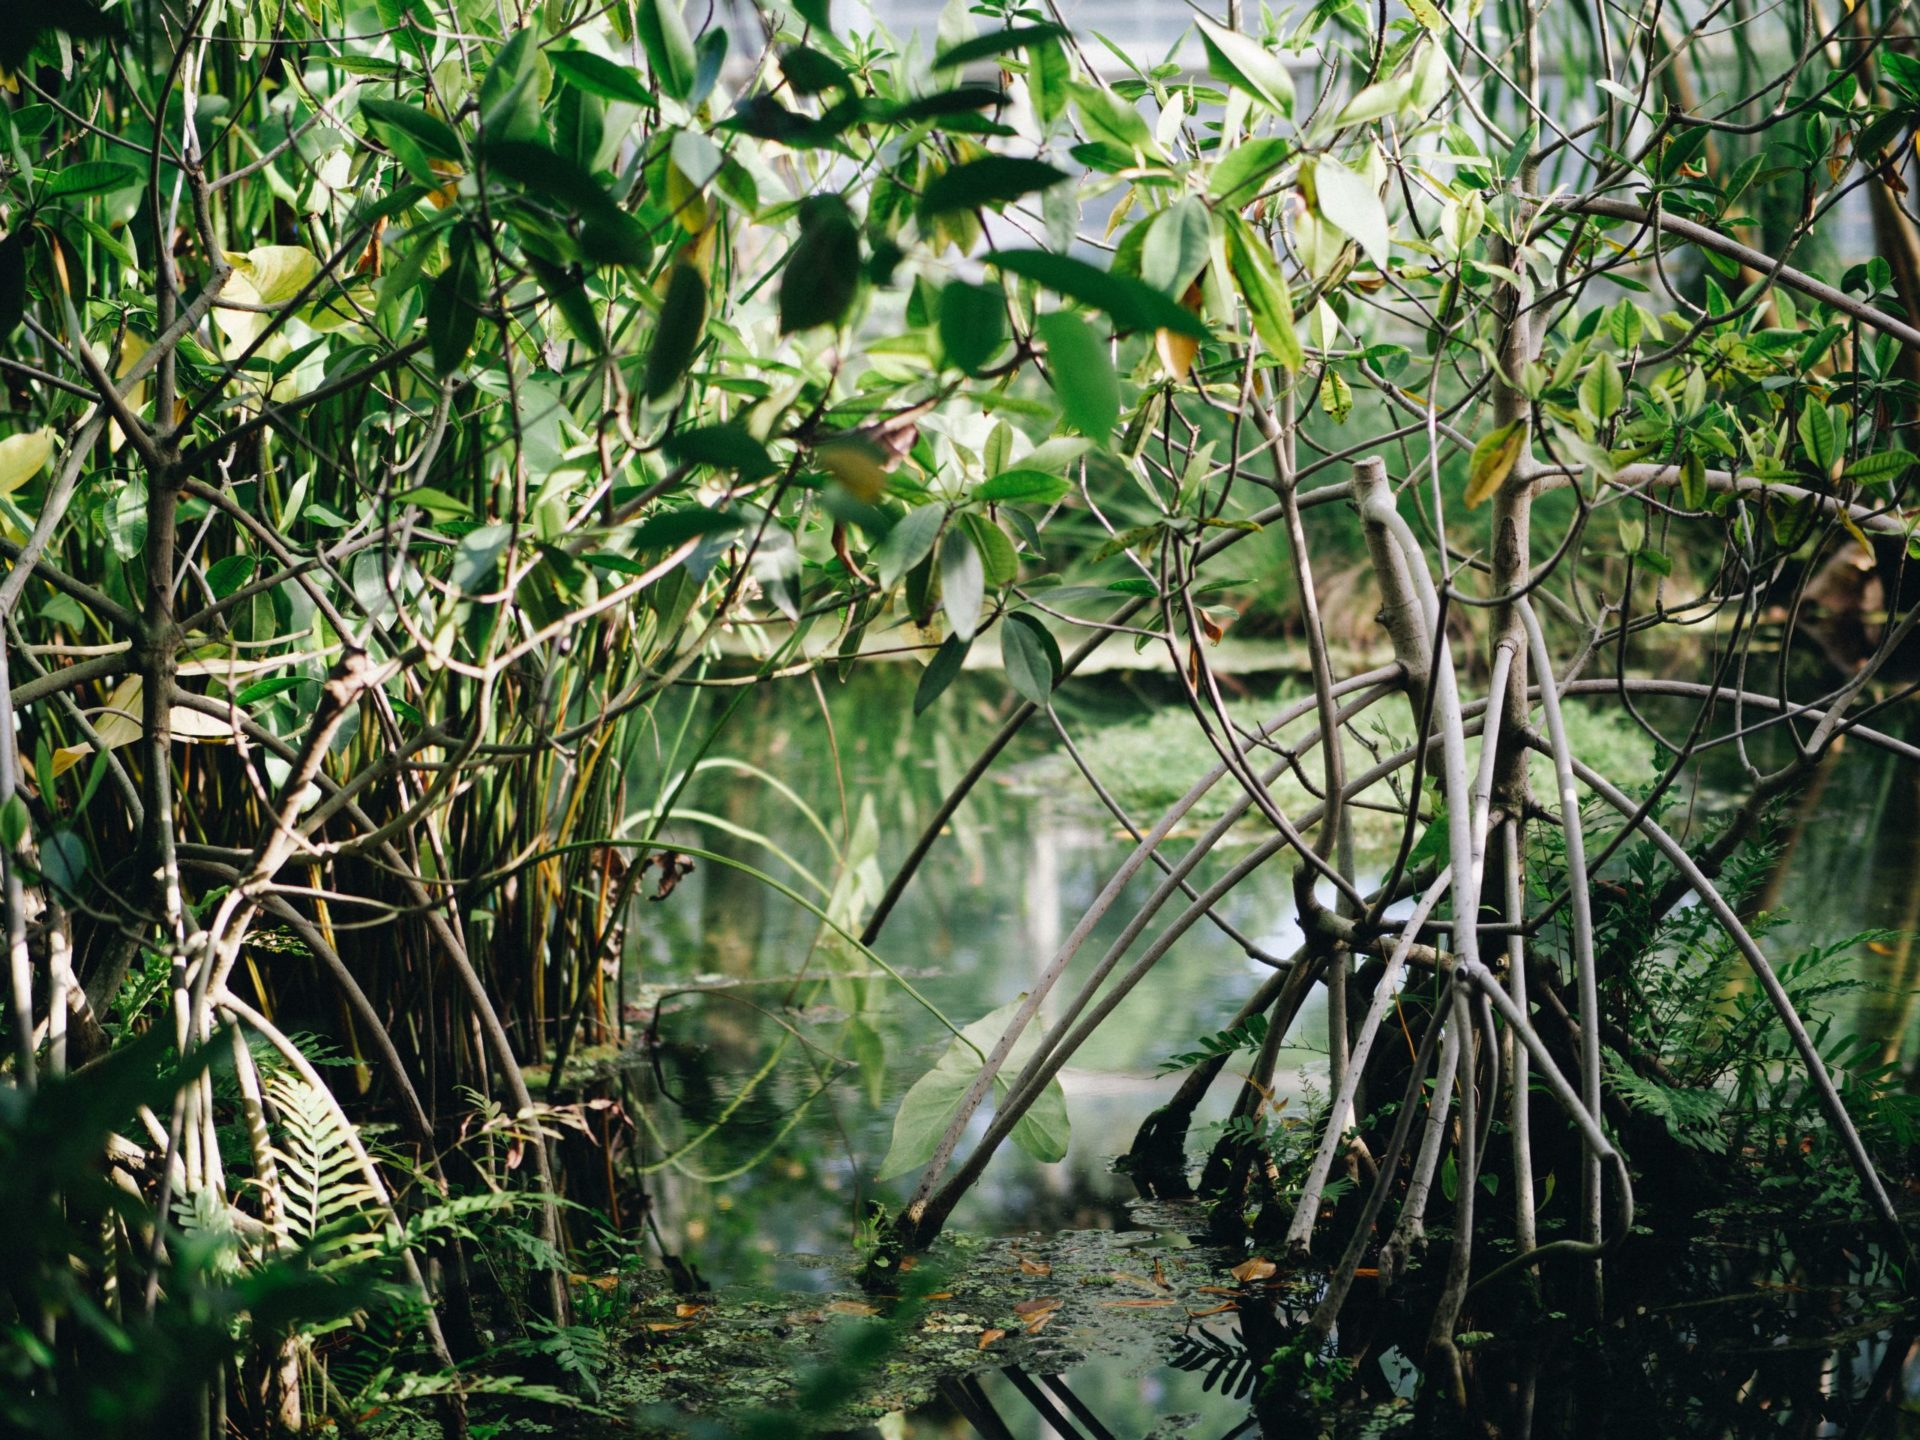 Marvellous Mangrove Forests